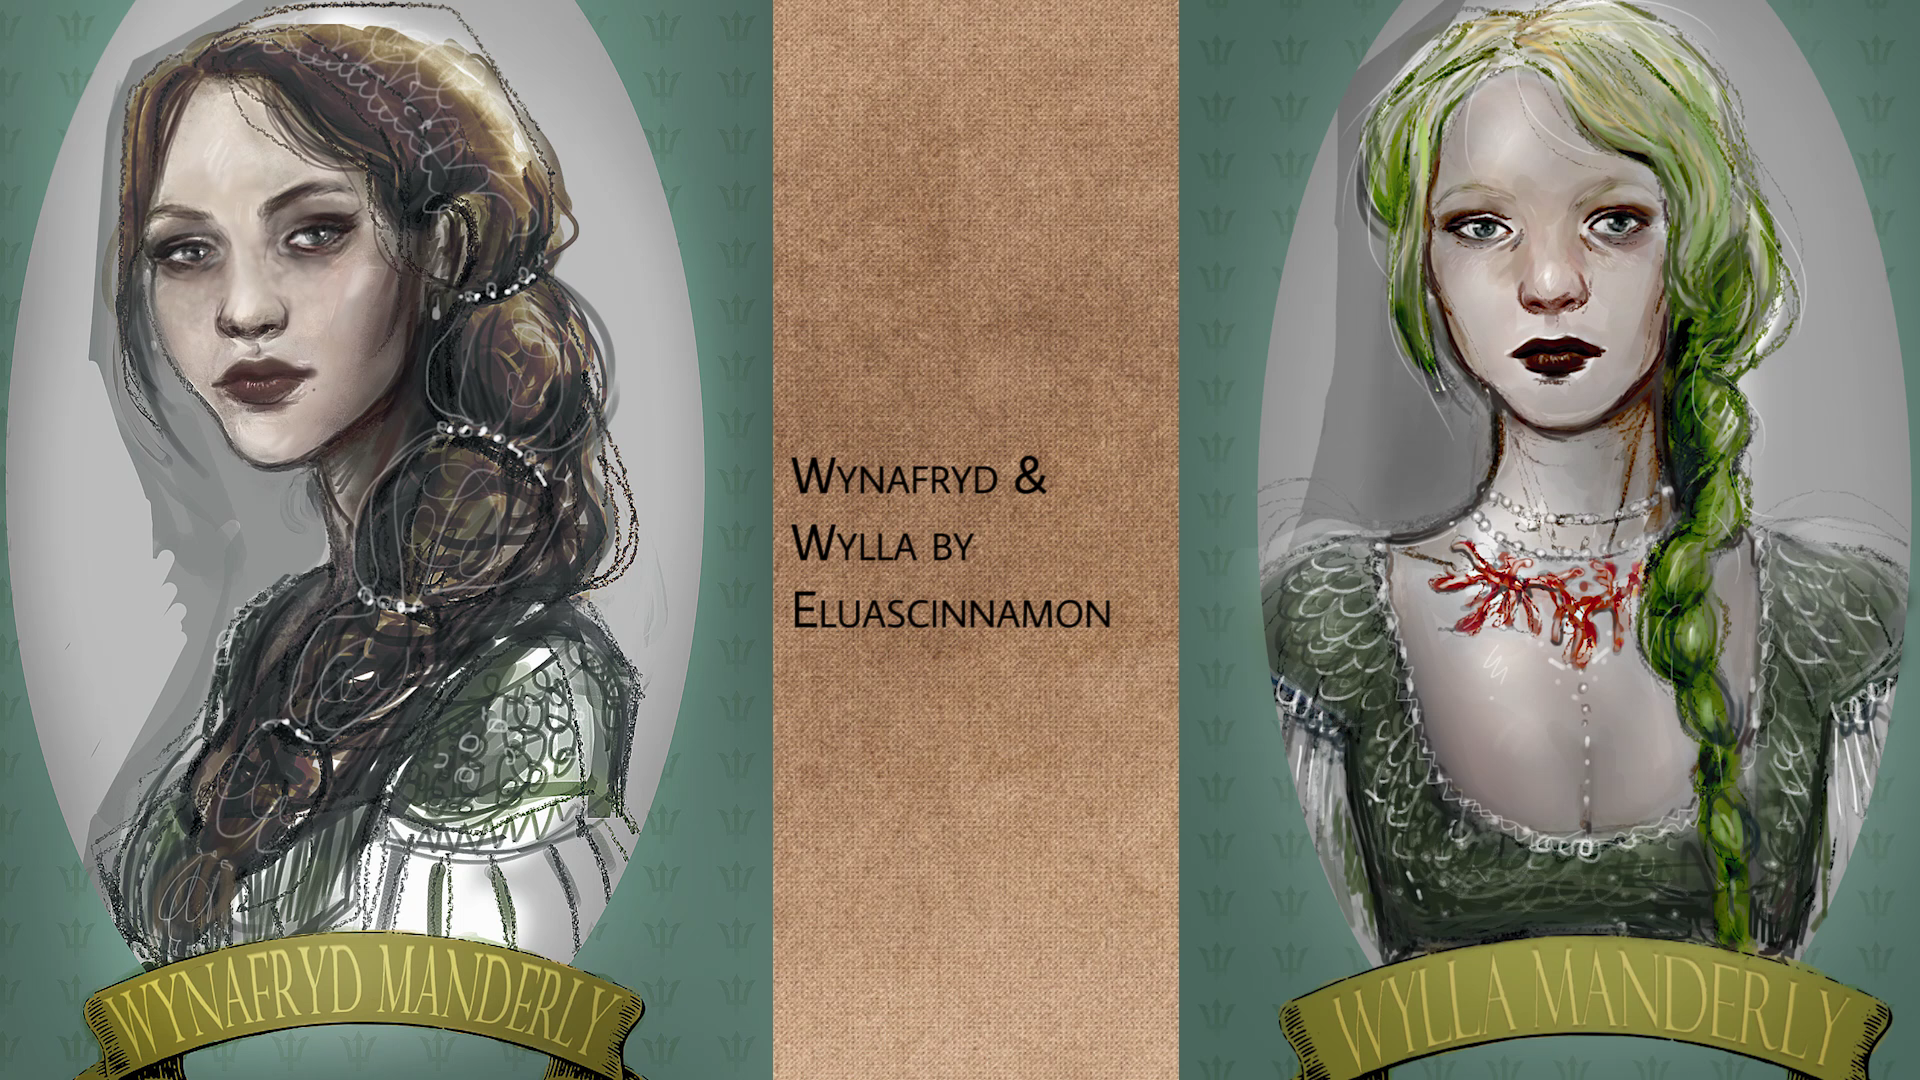 Wynafryd and Wylla by eluascinnamon